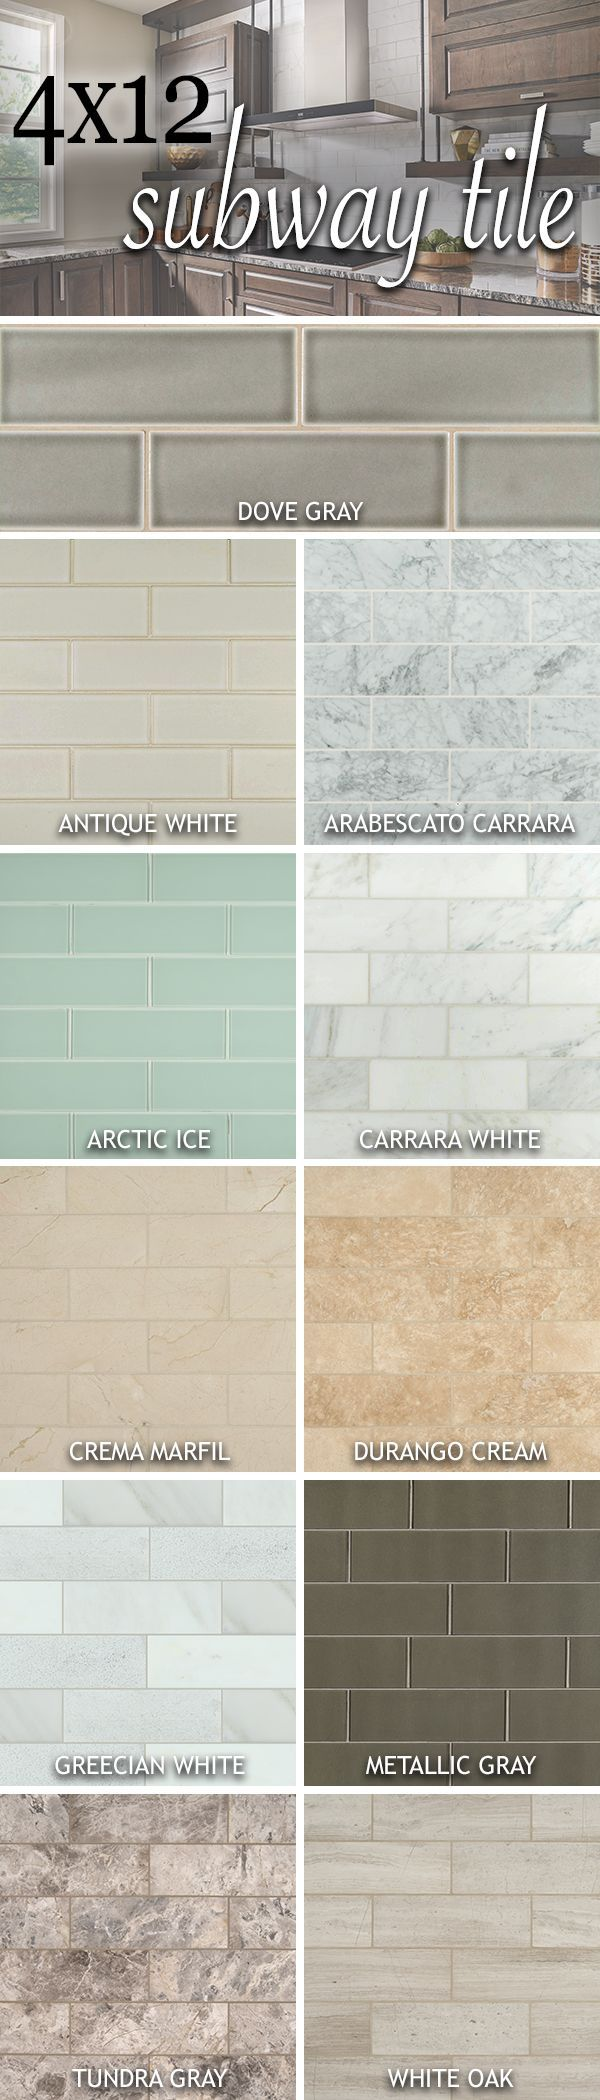 Would the Carrara or Greece white be